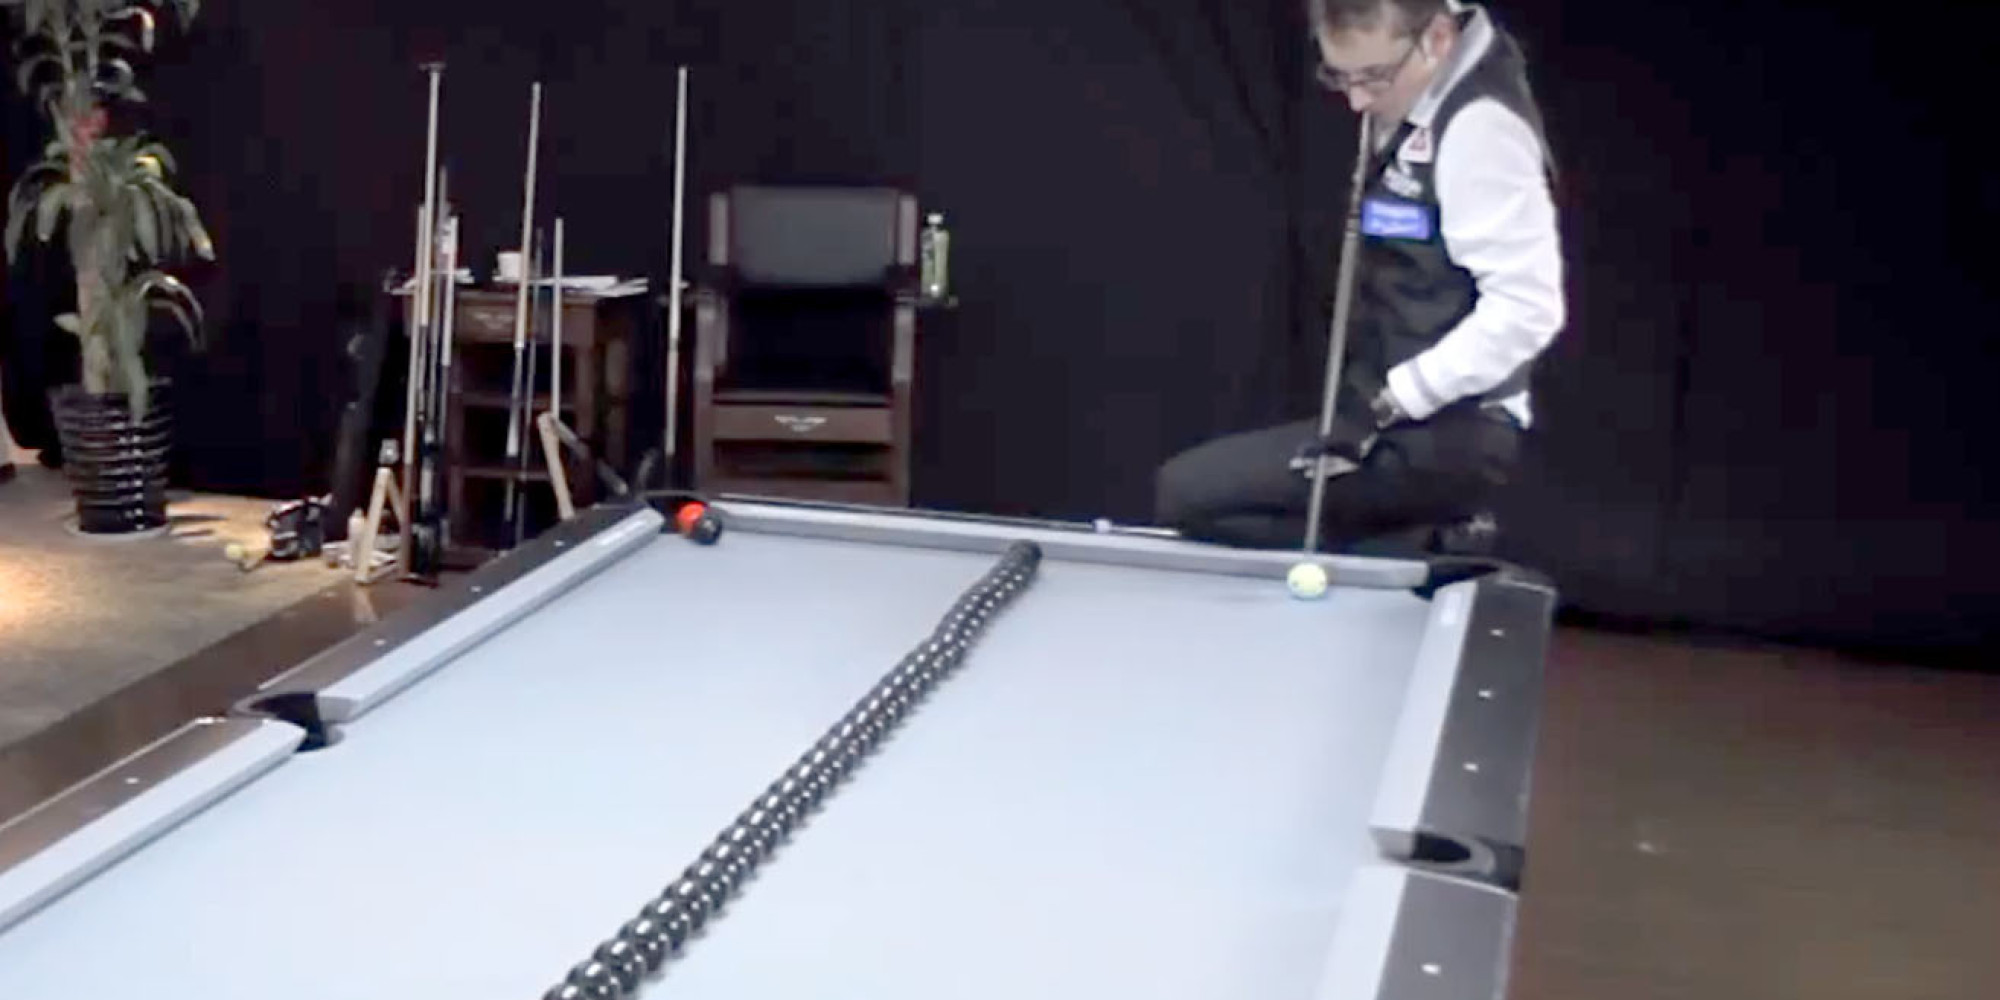 These amazing billiards trick shots don 39 t even look real - Awesome swimming pool trick shots ...